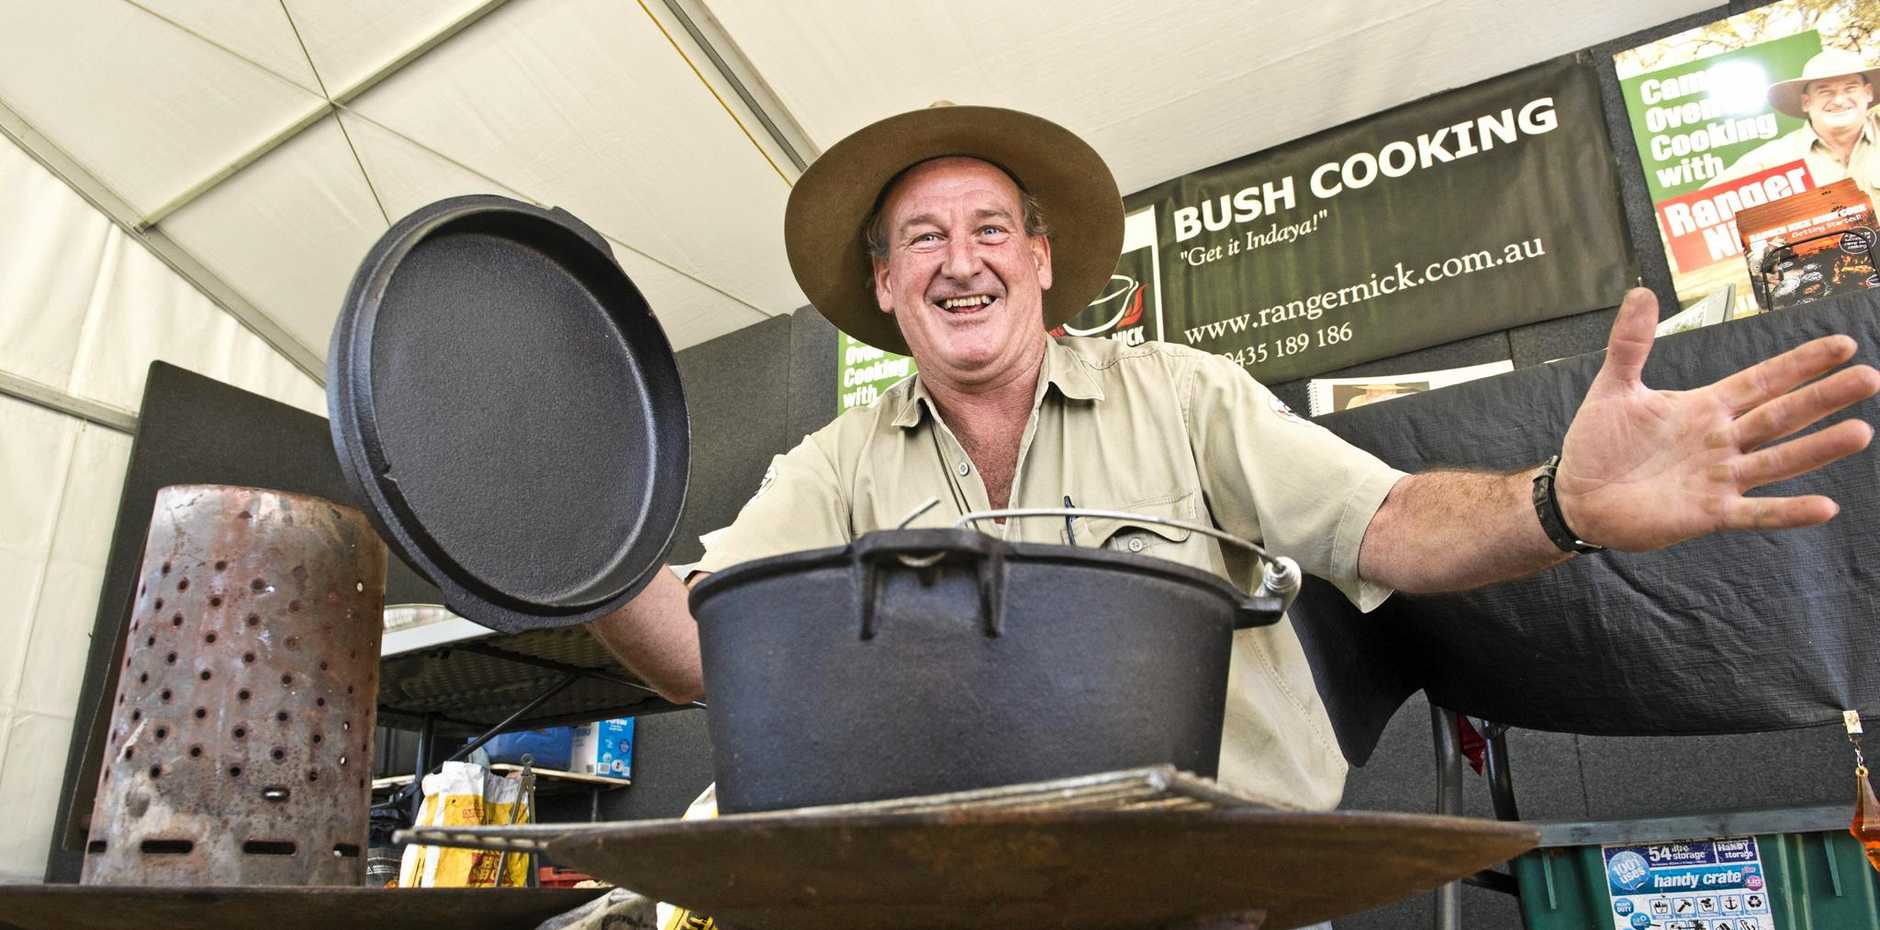 BUSH COOKING Nick Small (Ranger Nick) cooks up a storm at the 2017 Queensland Outdoor Adventure and Motoring Expo.